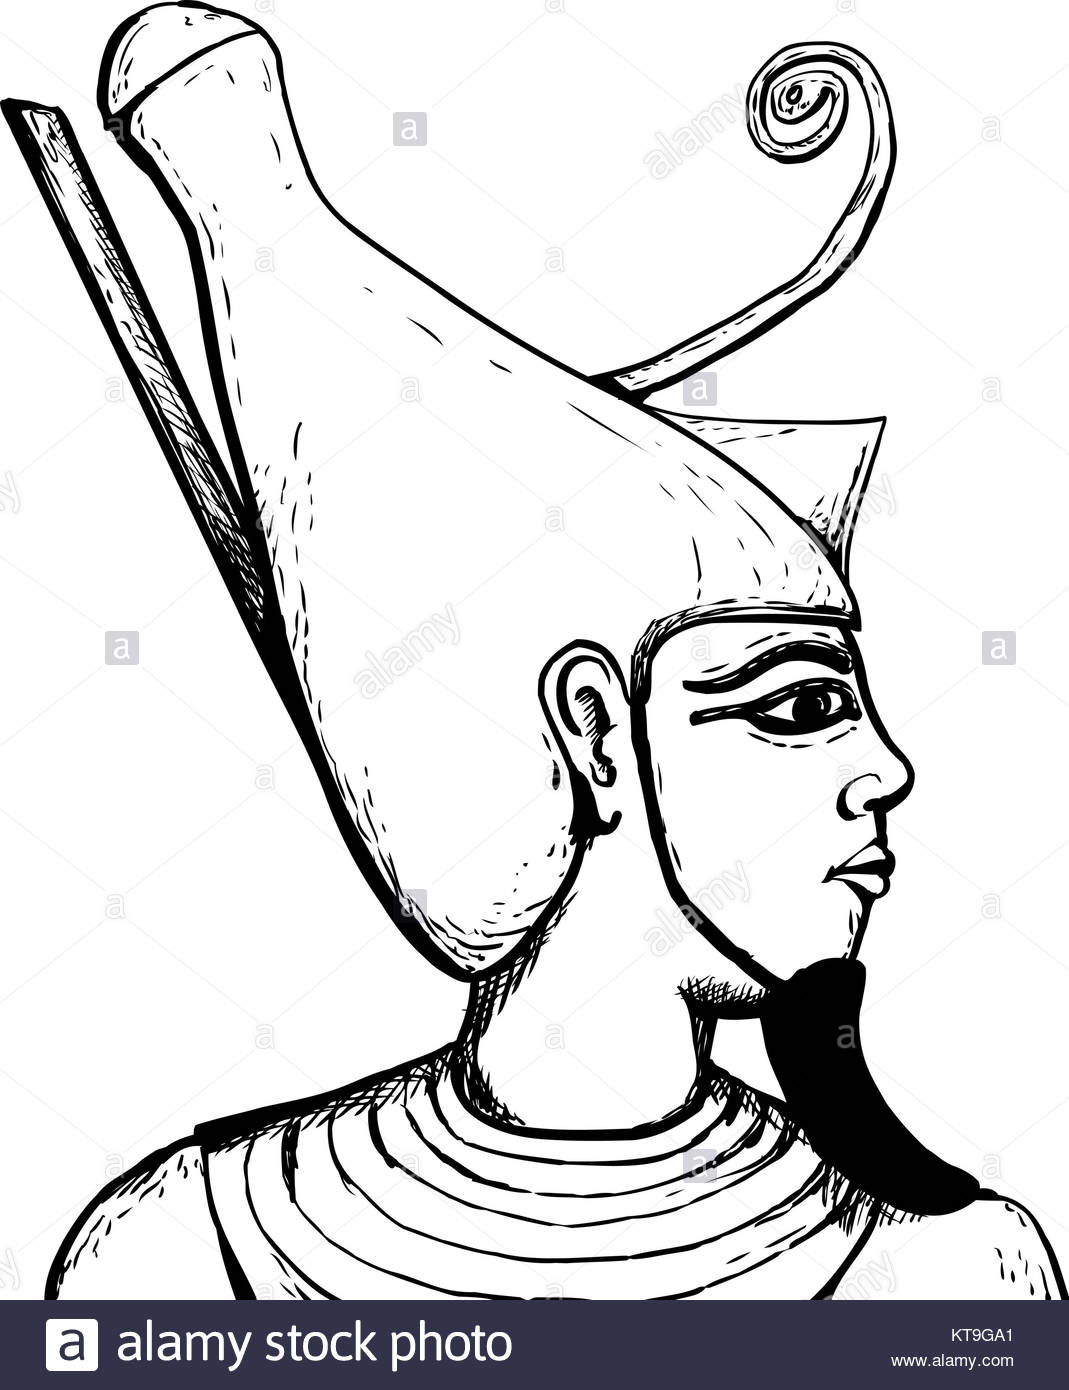 Egyptian Gods Drawing At Getdrawings